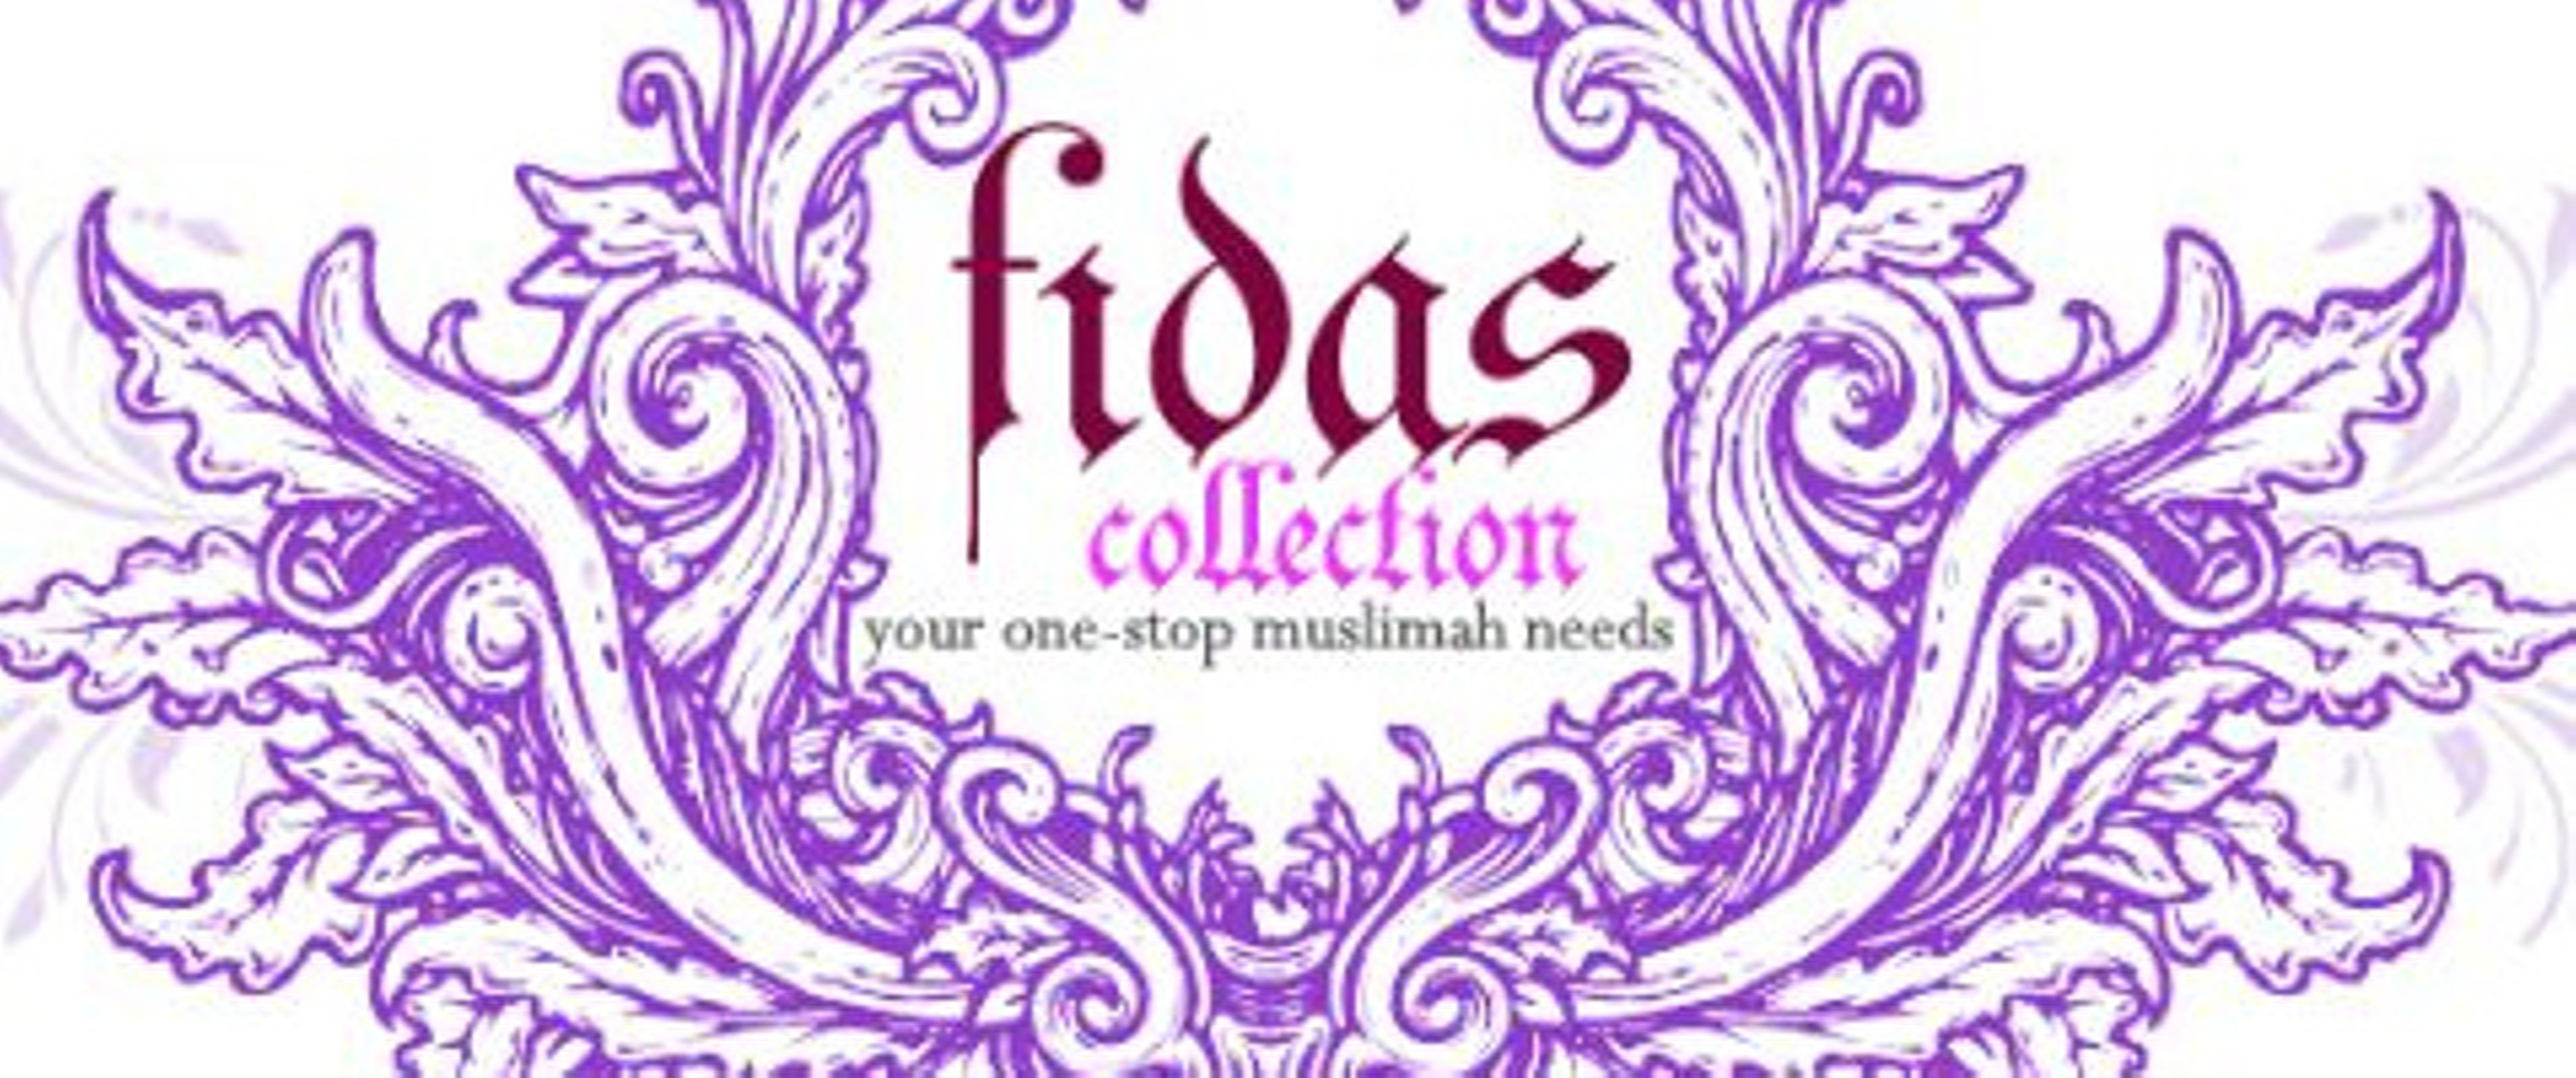 Fidascollection